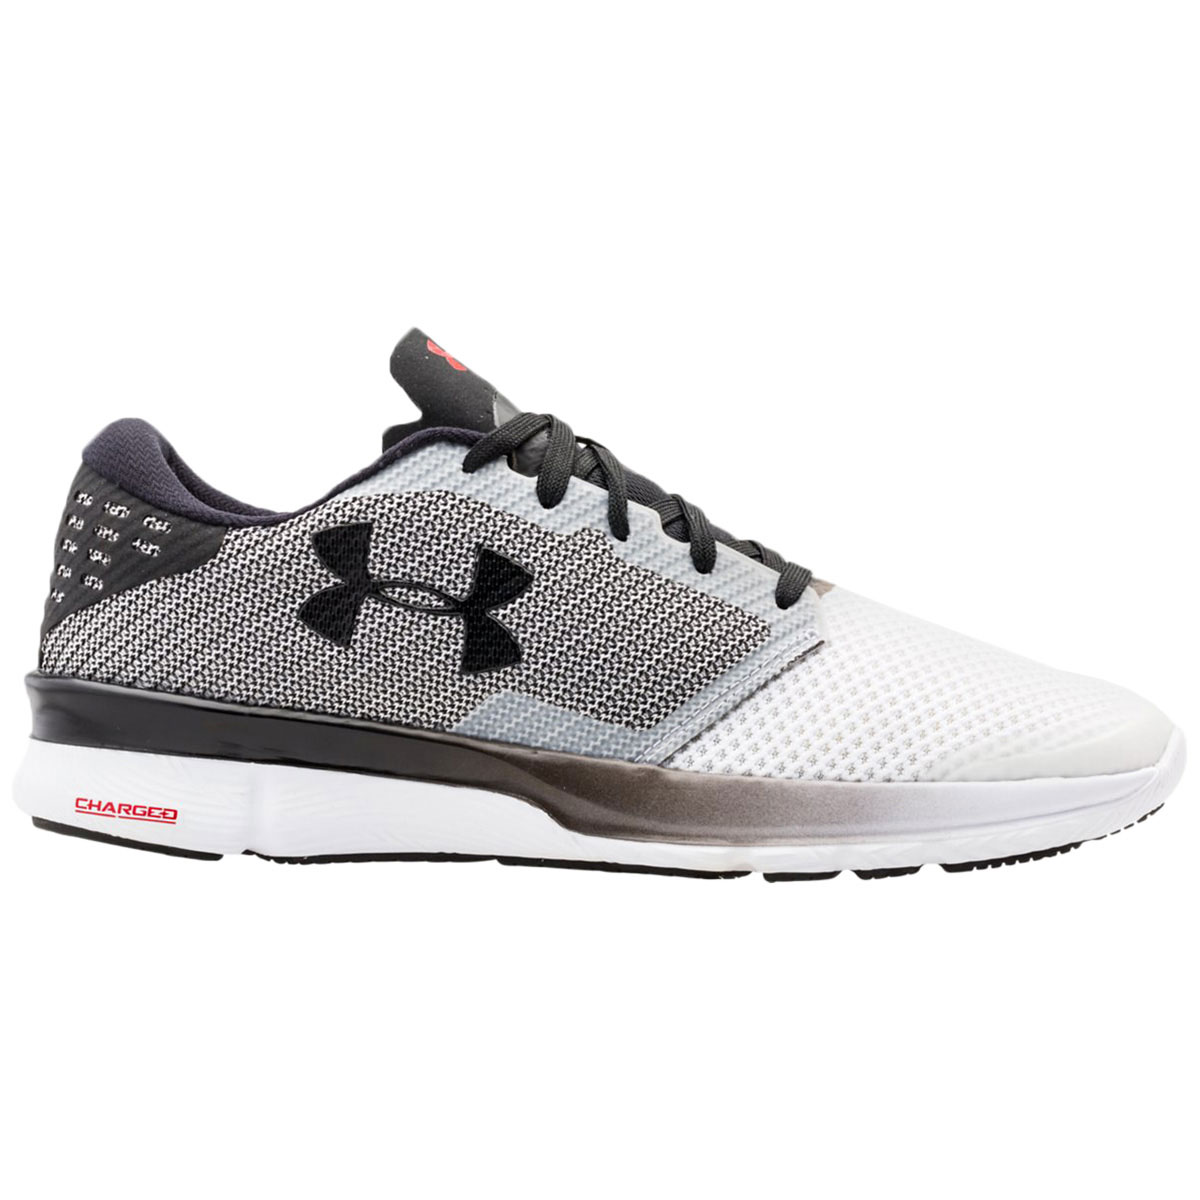 Under armour 2016 mens ua charged reckless running for Gimnasio ua